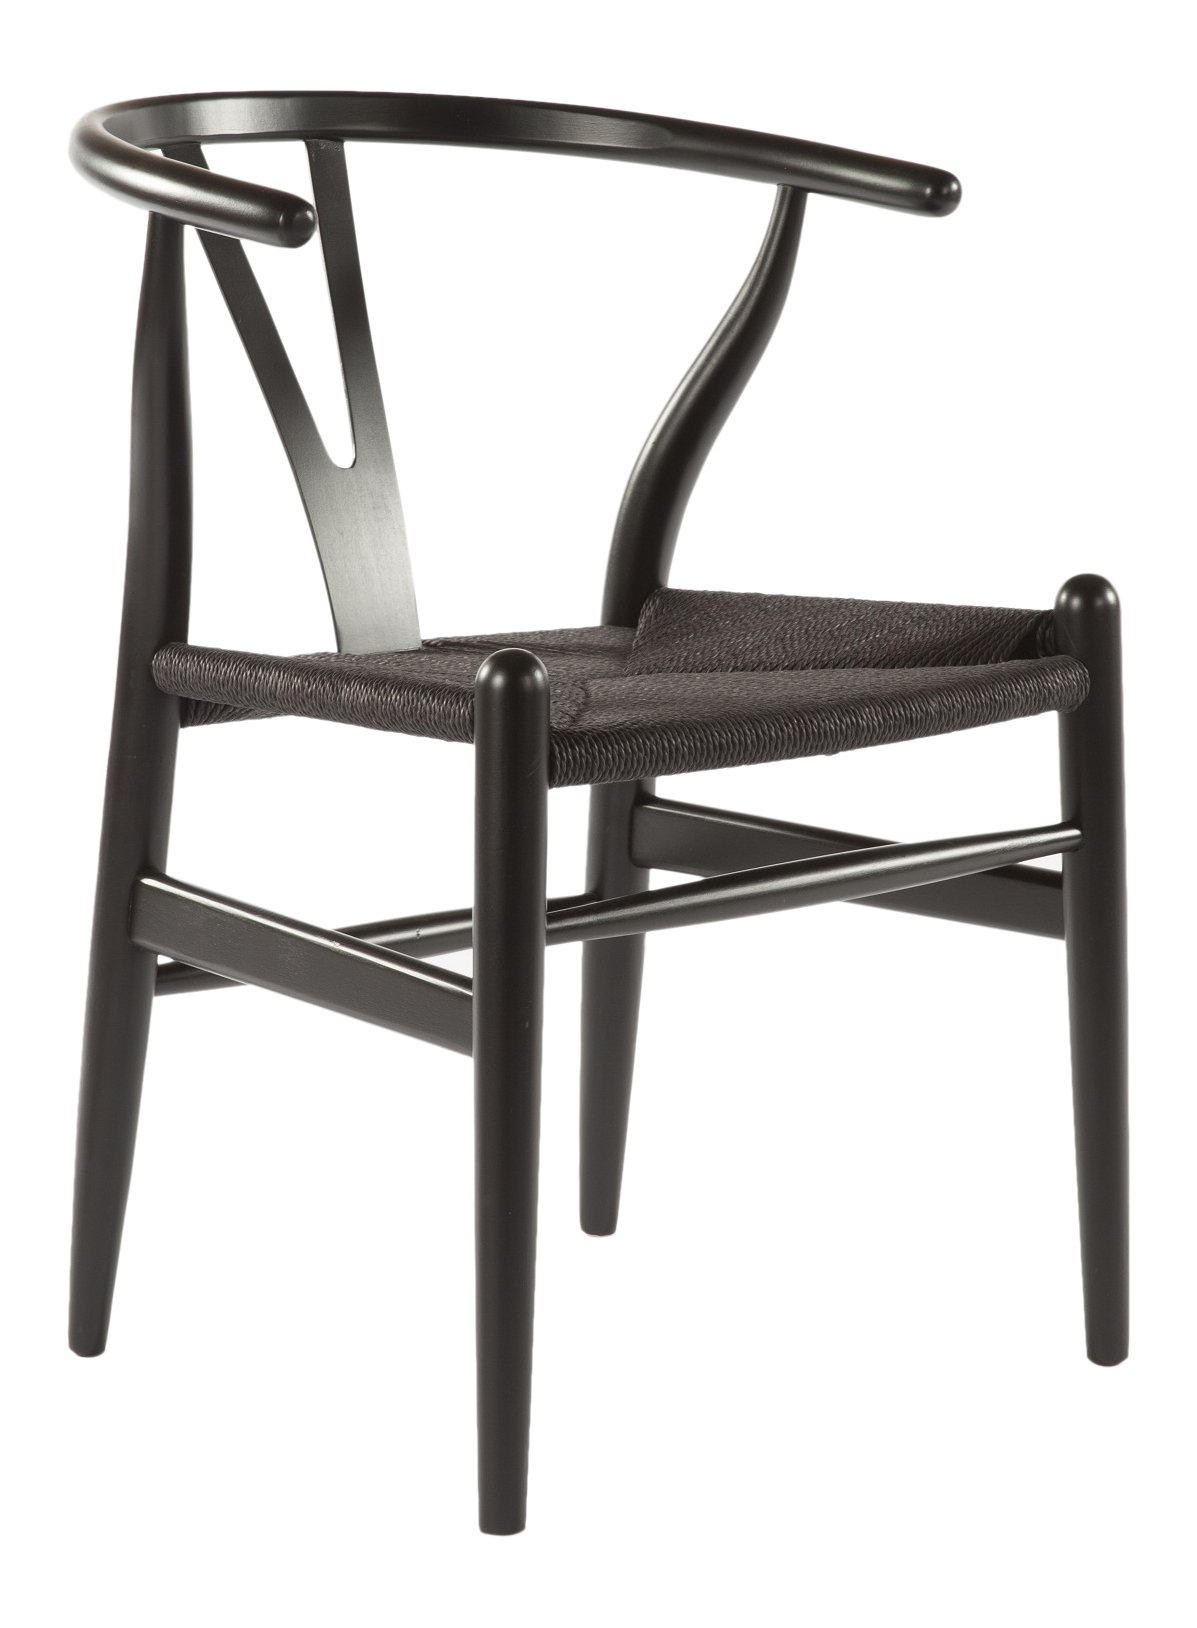 Stilnovo The Wishbone Chair with Black Strings, Black - No Assembly Required Black Hardwood Frame Black Woven String Seat - kitchen-dining-room-furniture, kitchen-dining-room, kitchen-dining-room-chairs - 61mV Or8o L -